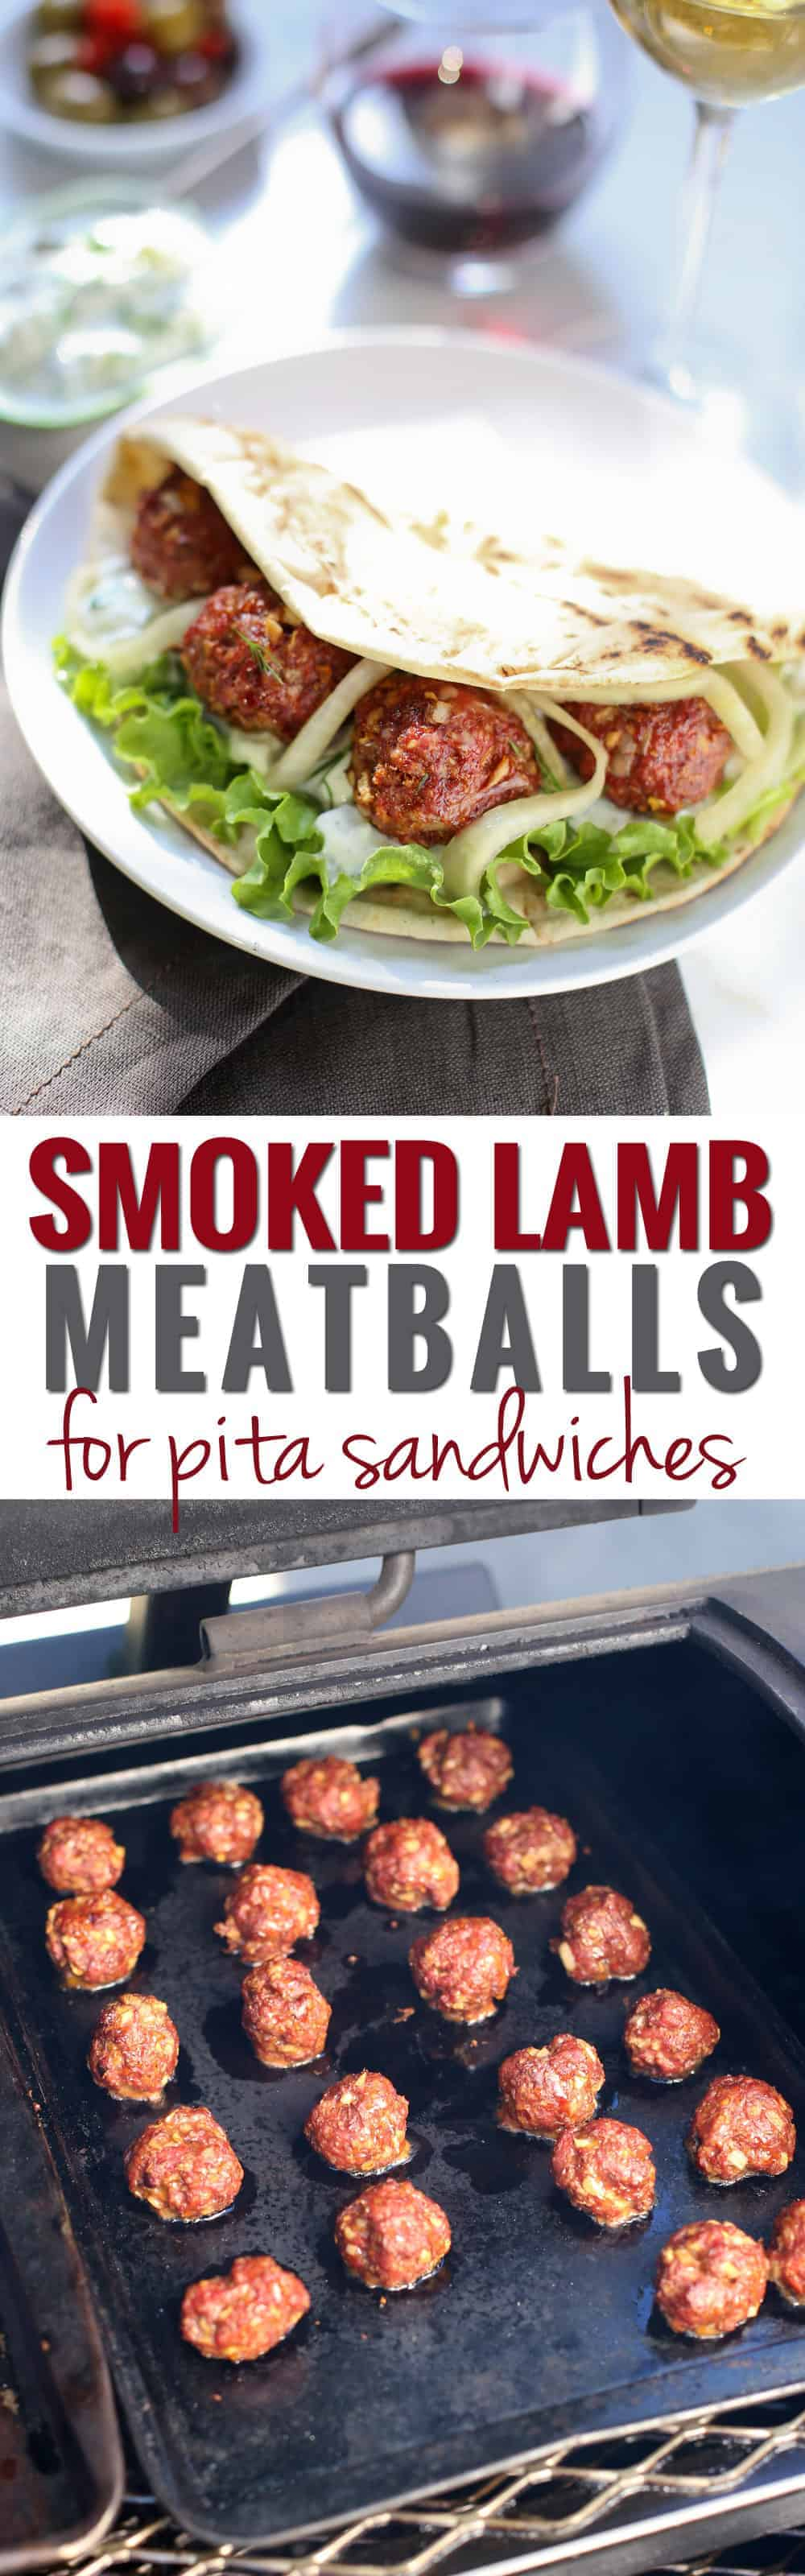 Smoked Lamb Meatballs for incredible Pita Sandwiches. Tender ground lamb makes for the most flavorful meatballs ever. These are downright perfect!